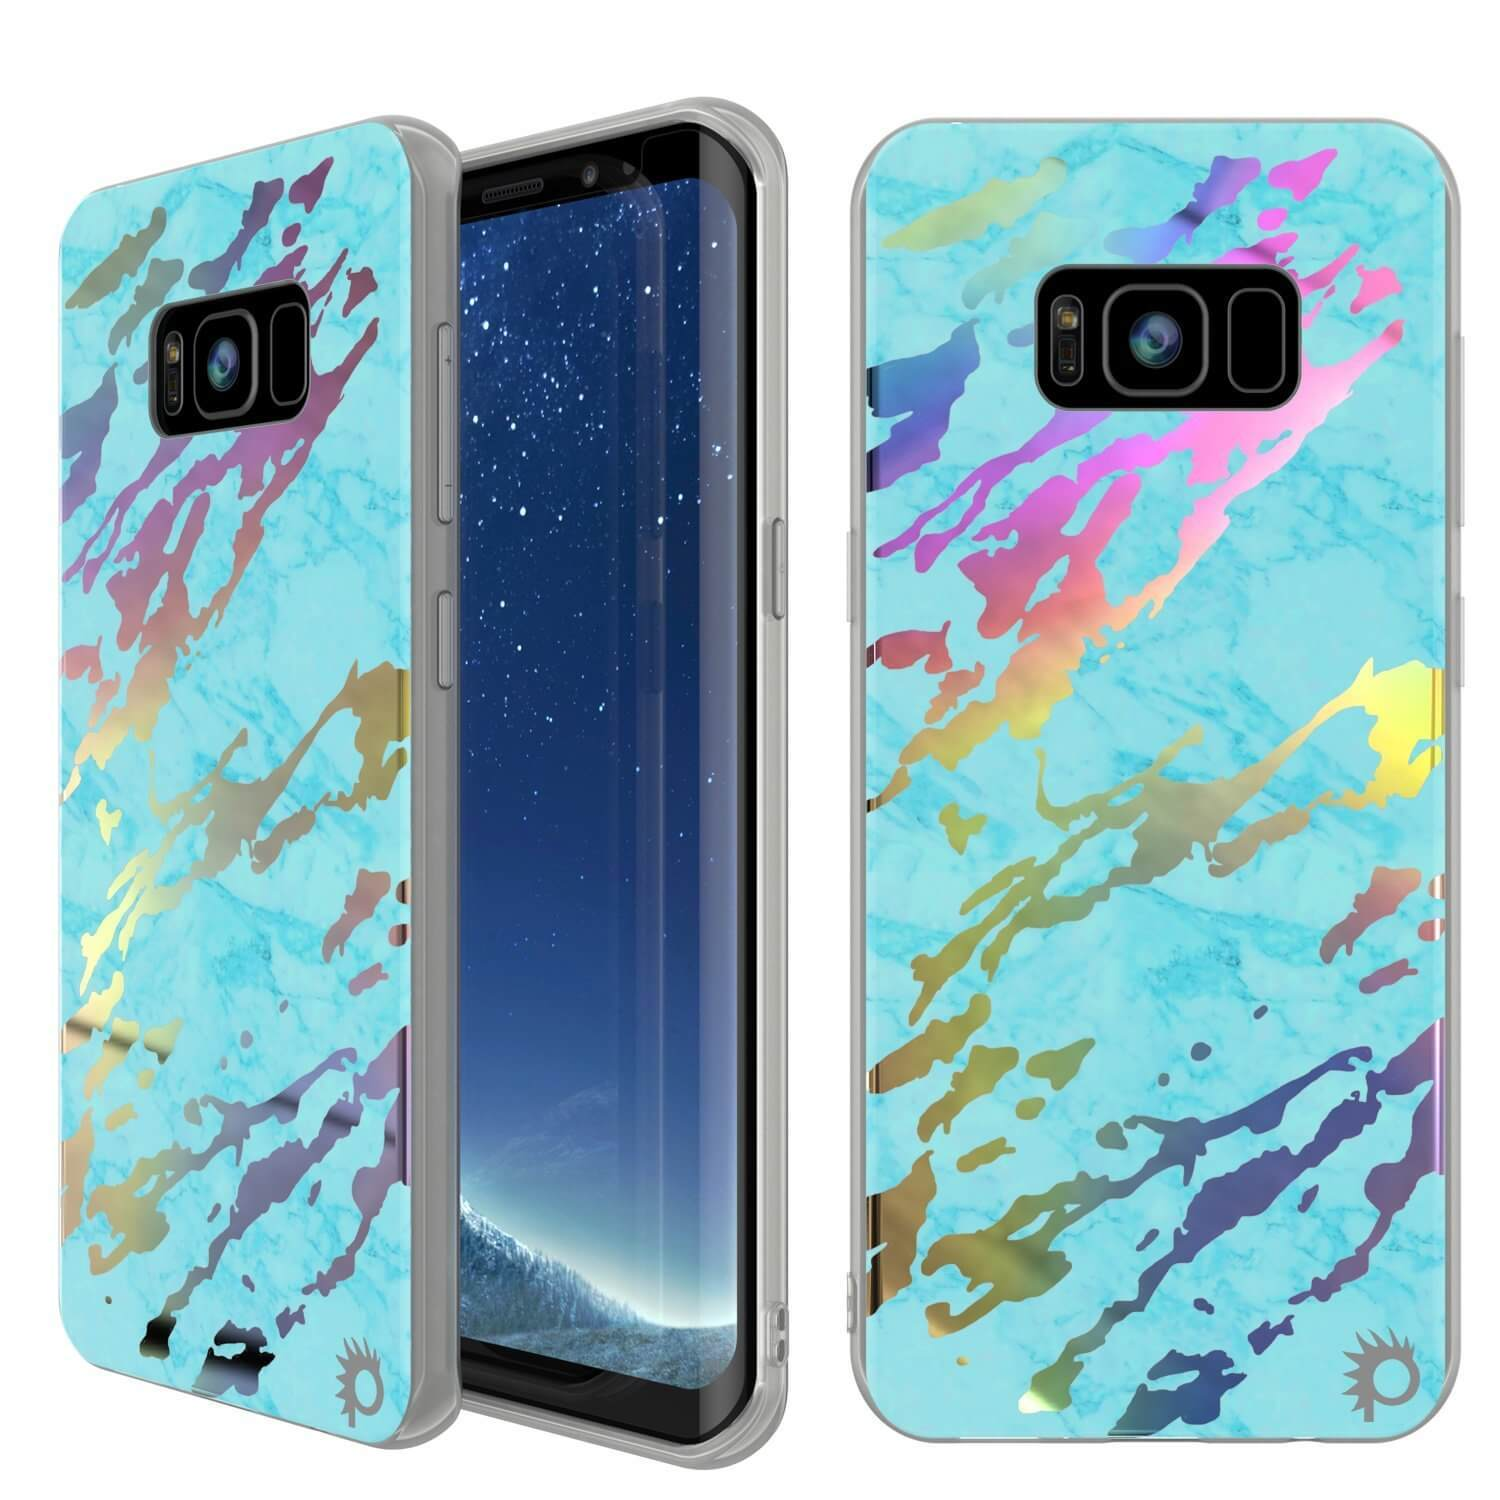 Galaxy S8 Plus Marble Case, Protective Full Body Cover[Teal Onyx]